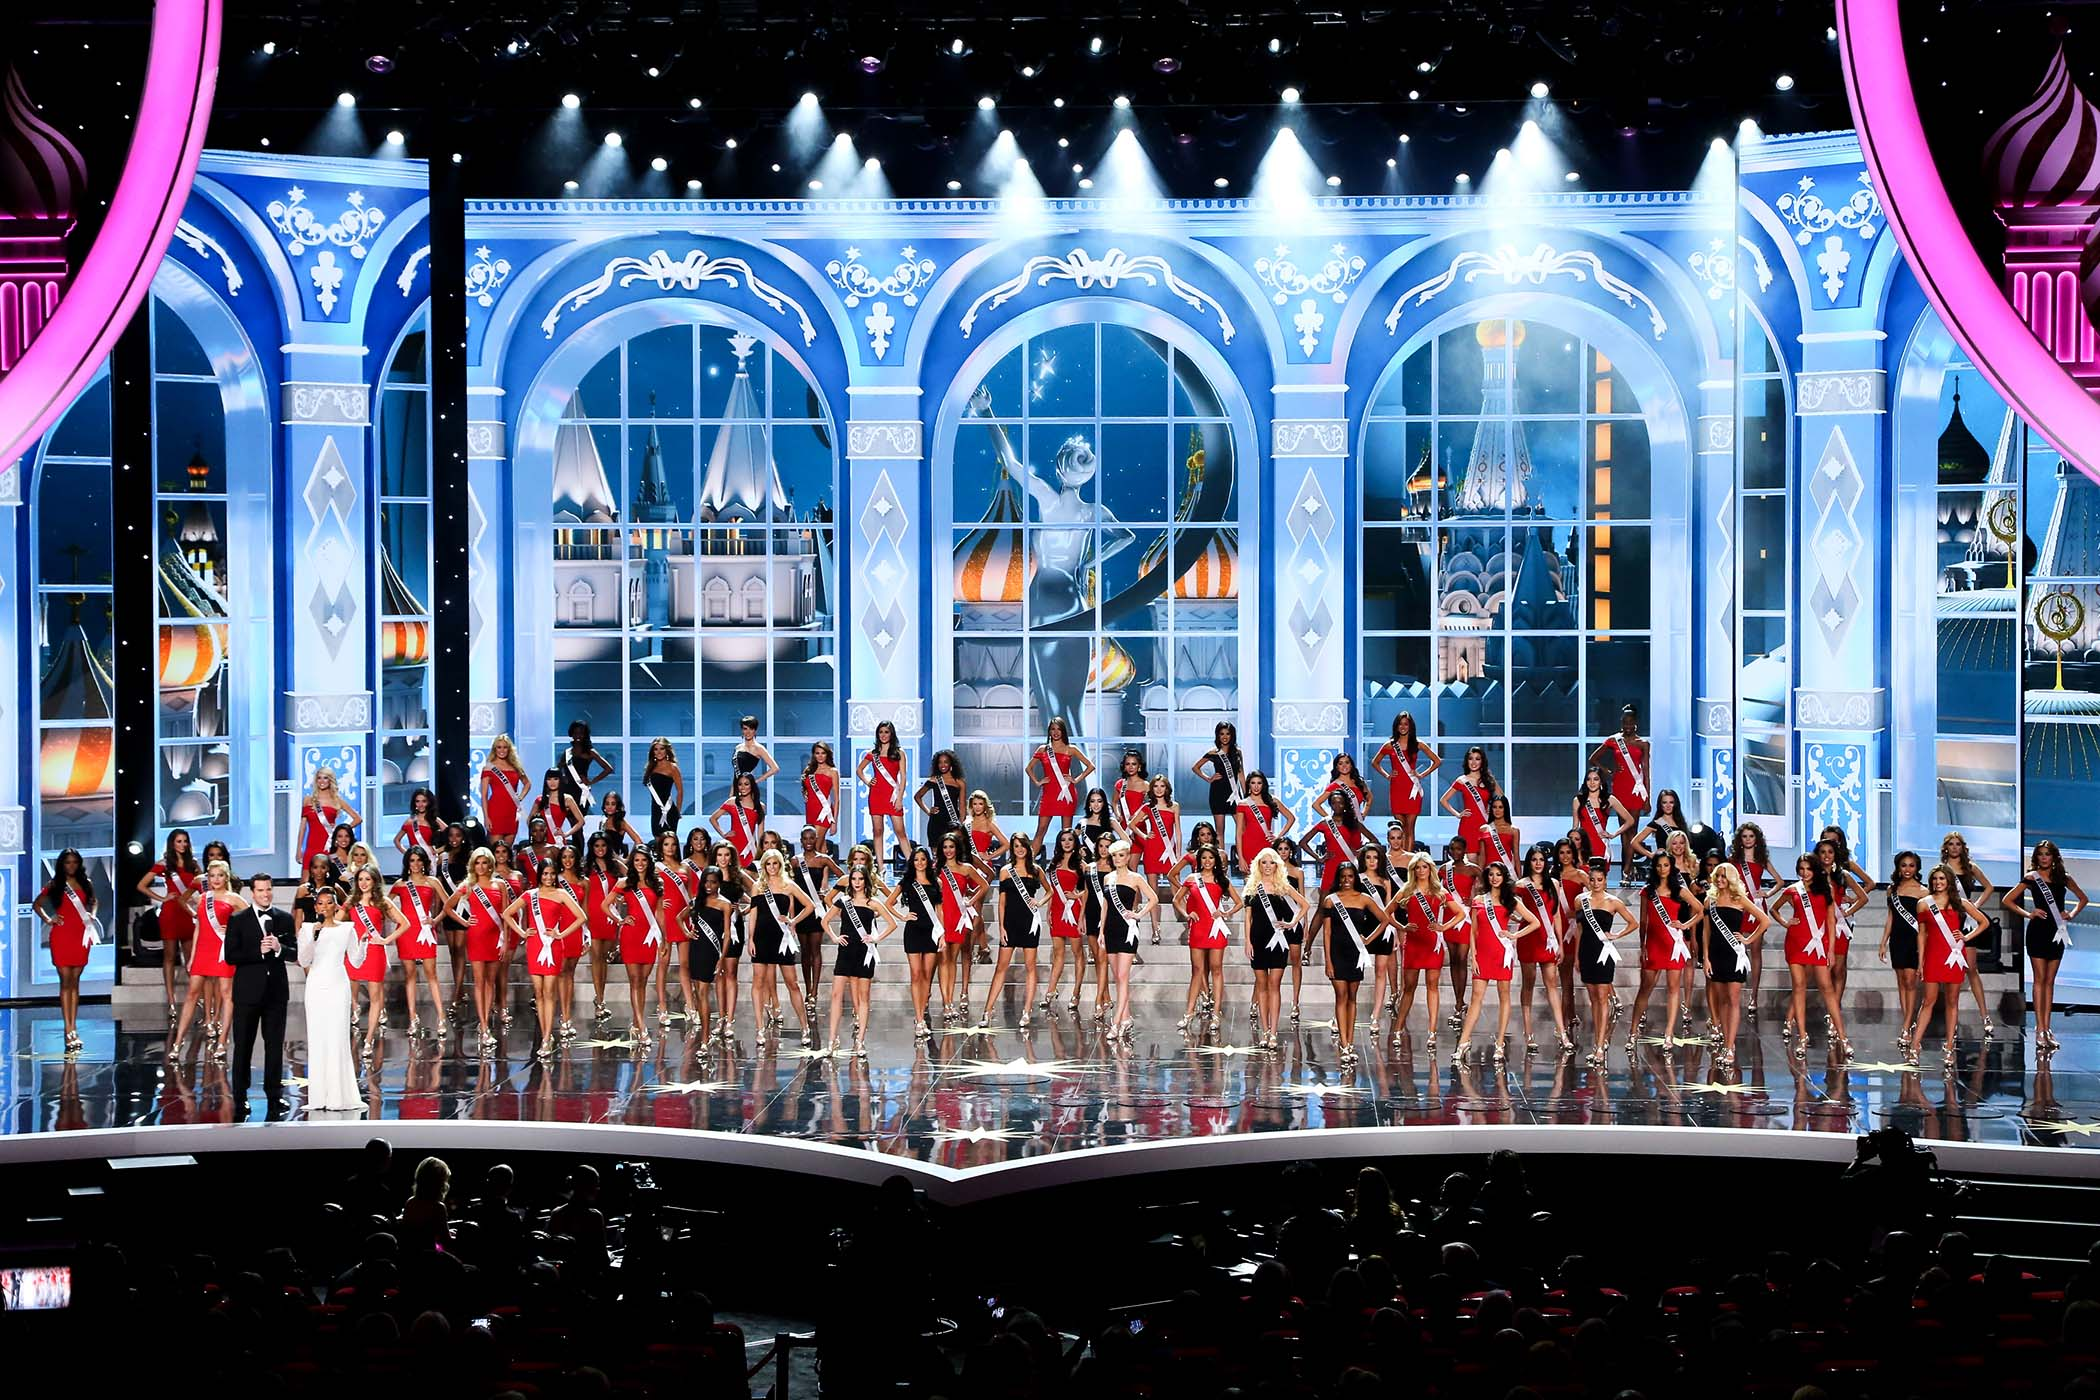 Miss Universe 2013 Stage